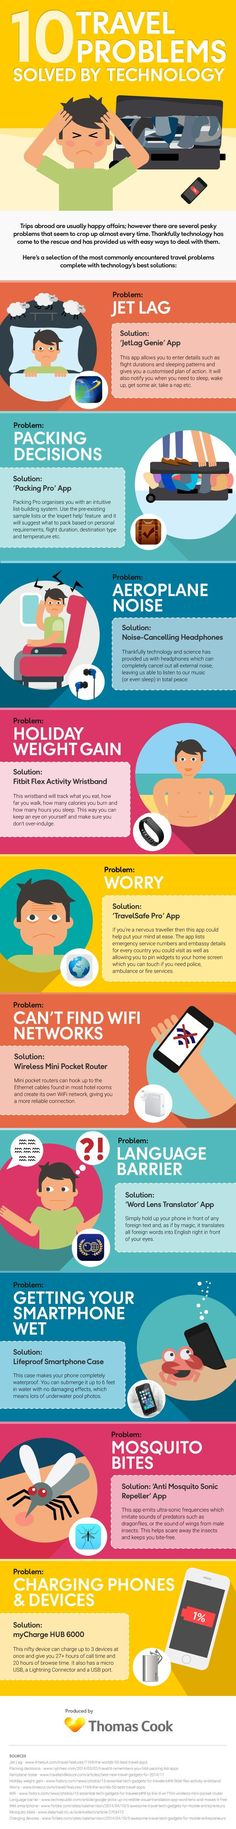 You got a problem while traveling? We got a solution for you. 10 Travel Problems Solved by Technology #travelbelize #traveltech